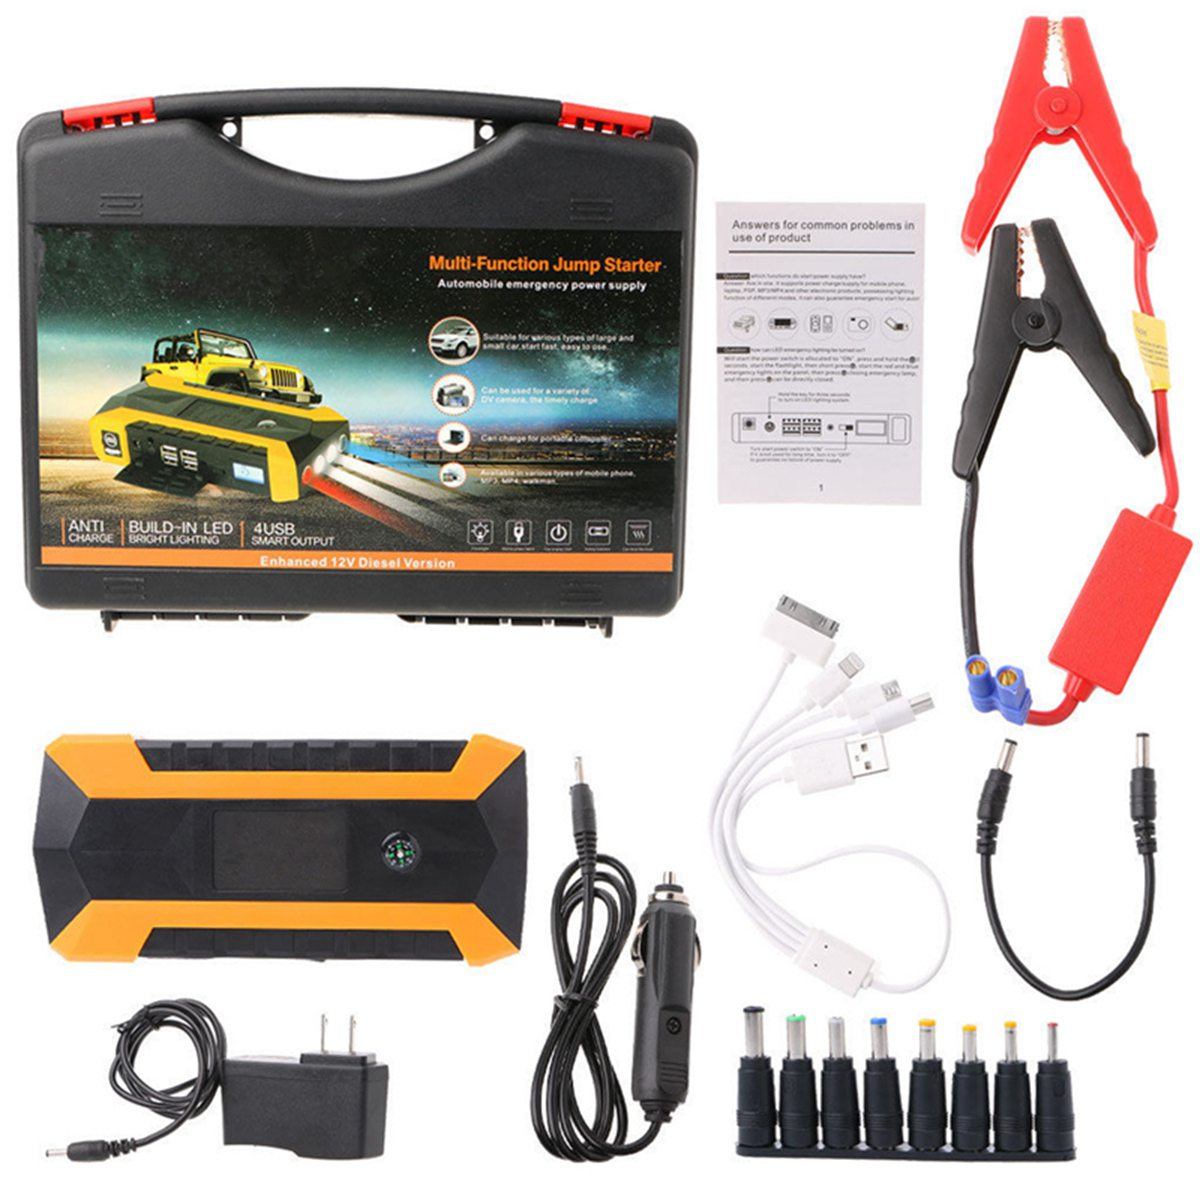 89800mAh Car Jump Starter 12V 4USB 600A Portable Car Battery Booster Charger Booster Power Bank Starting Device Car Starter ootdty 69900mah 89800mah 4 usb portable car jump starter pack booster charger battery power bank 600a